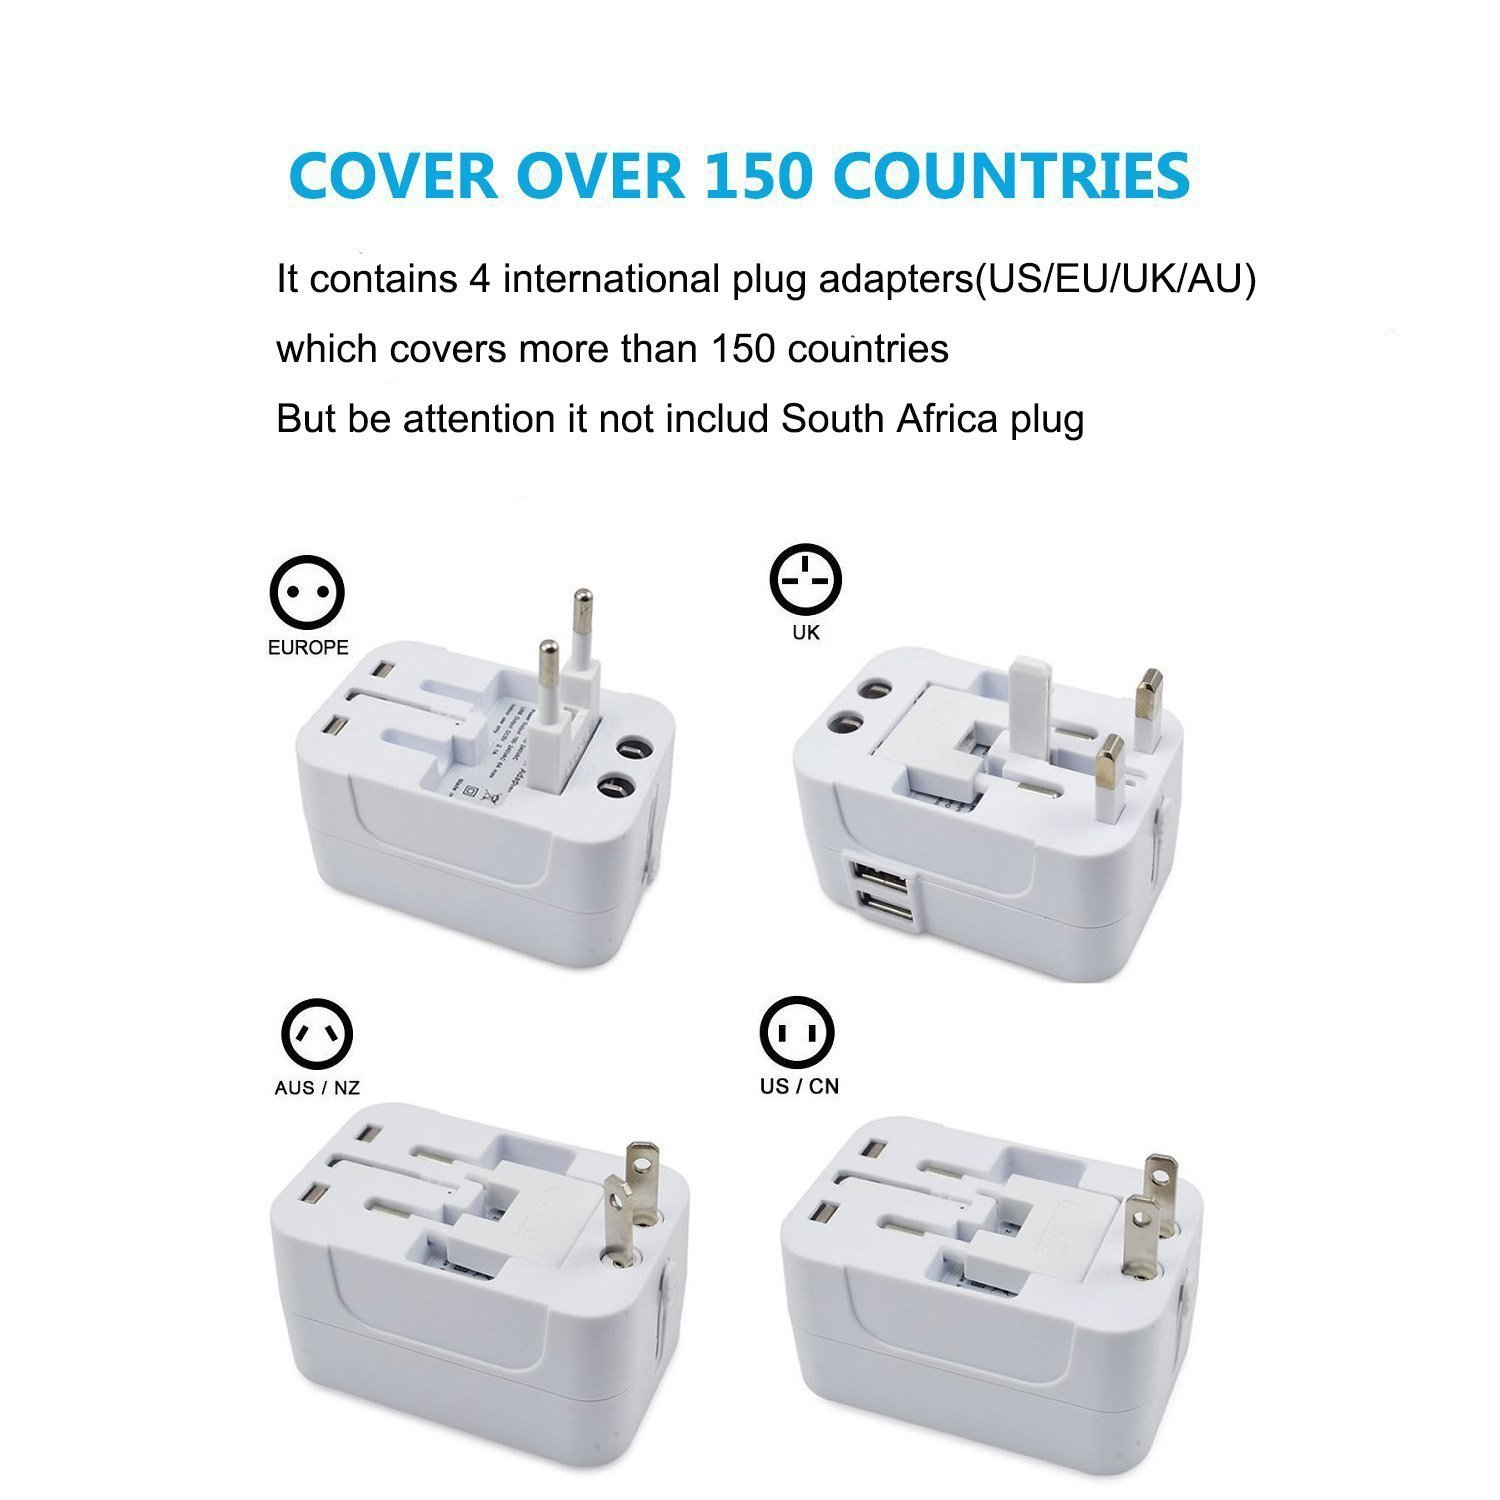 Travel Adapter,Worldwide All in one Universal AC Power Plug Adaptor,Free USB Cable (Support Android/Apple),Wall Charger with Dual USB Charging Ports/USA/EU/UK/AUS,Cell phone laptop (White)